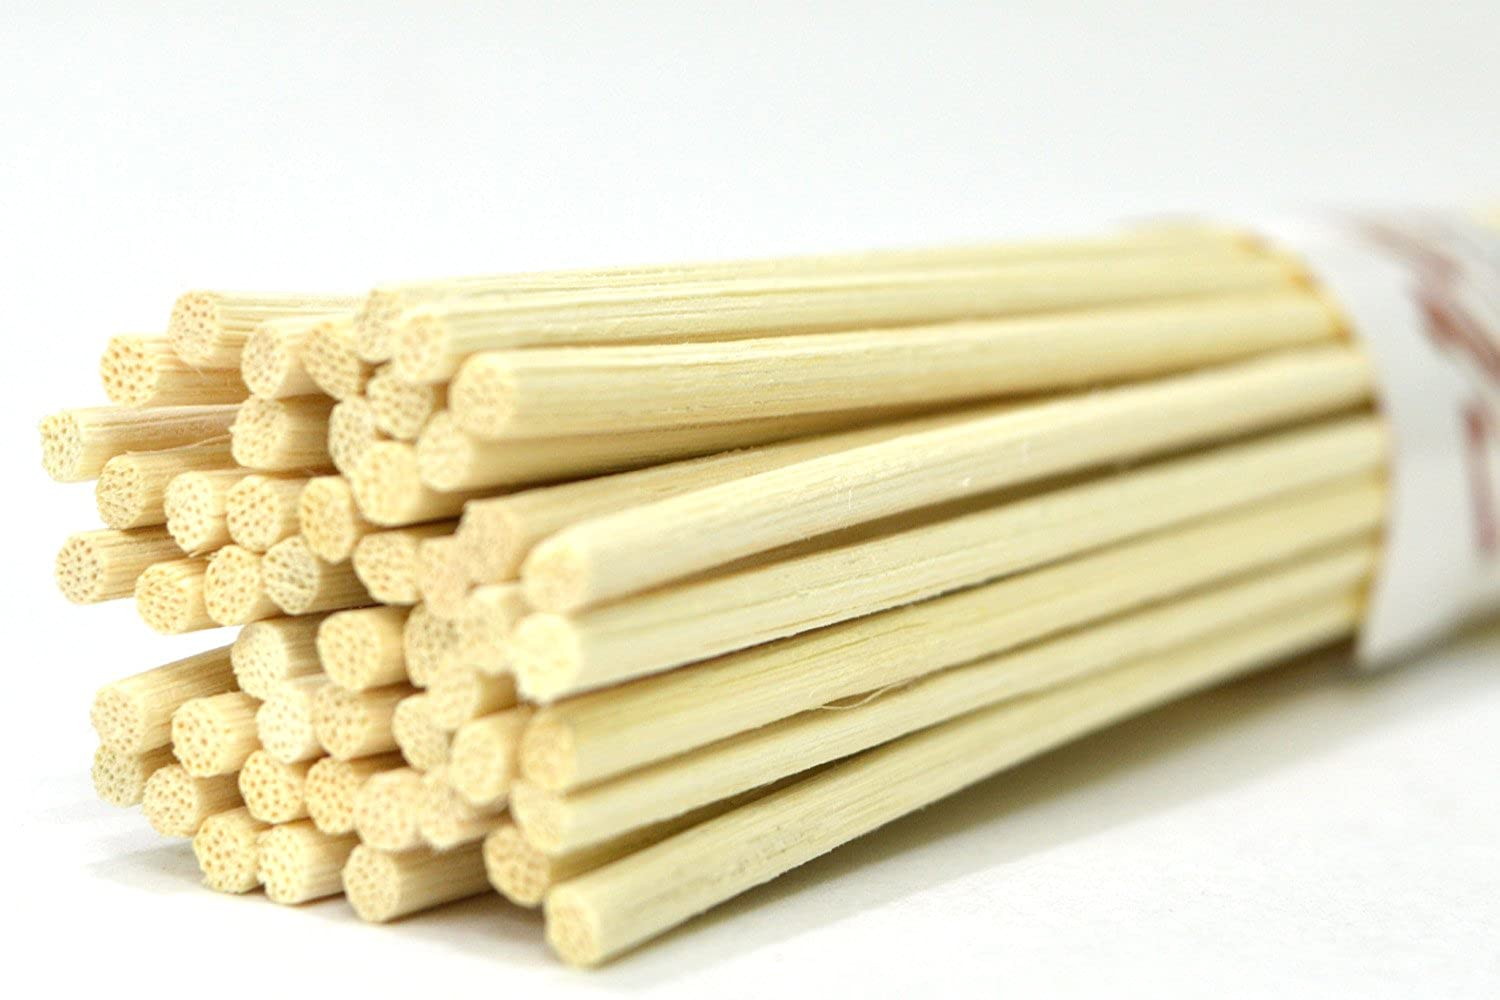 Royal Handicrafts Rattan Reed Stick 8 inches